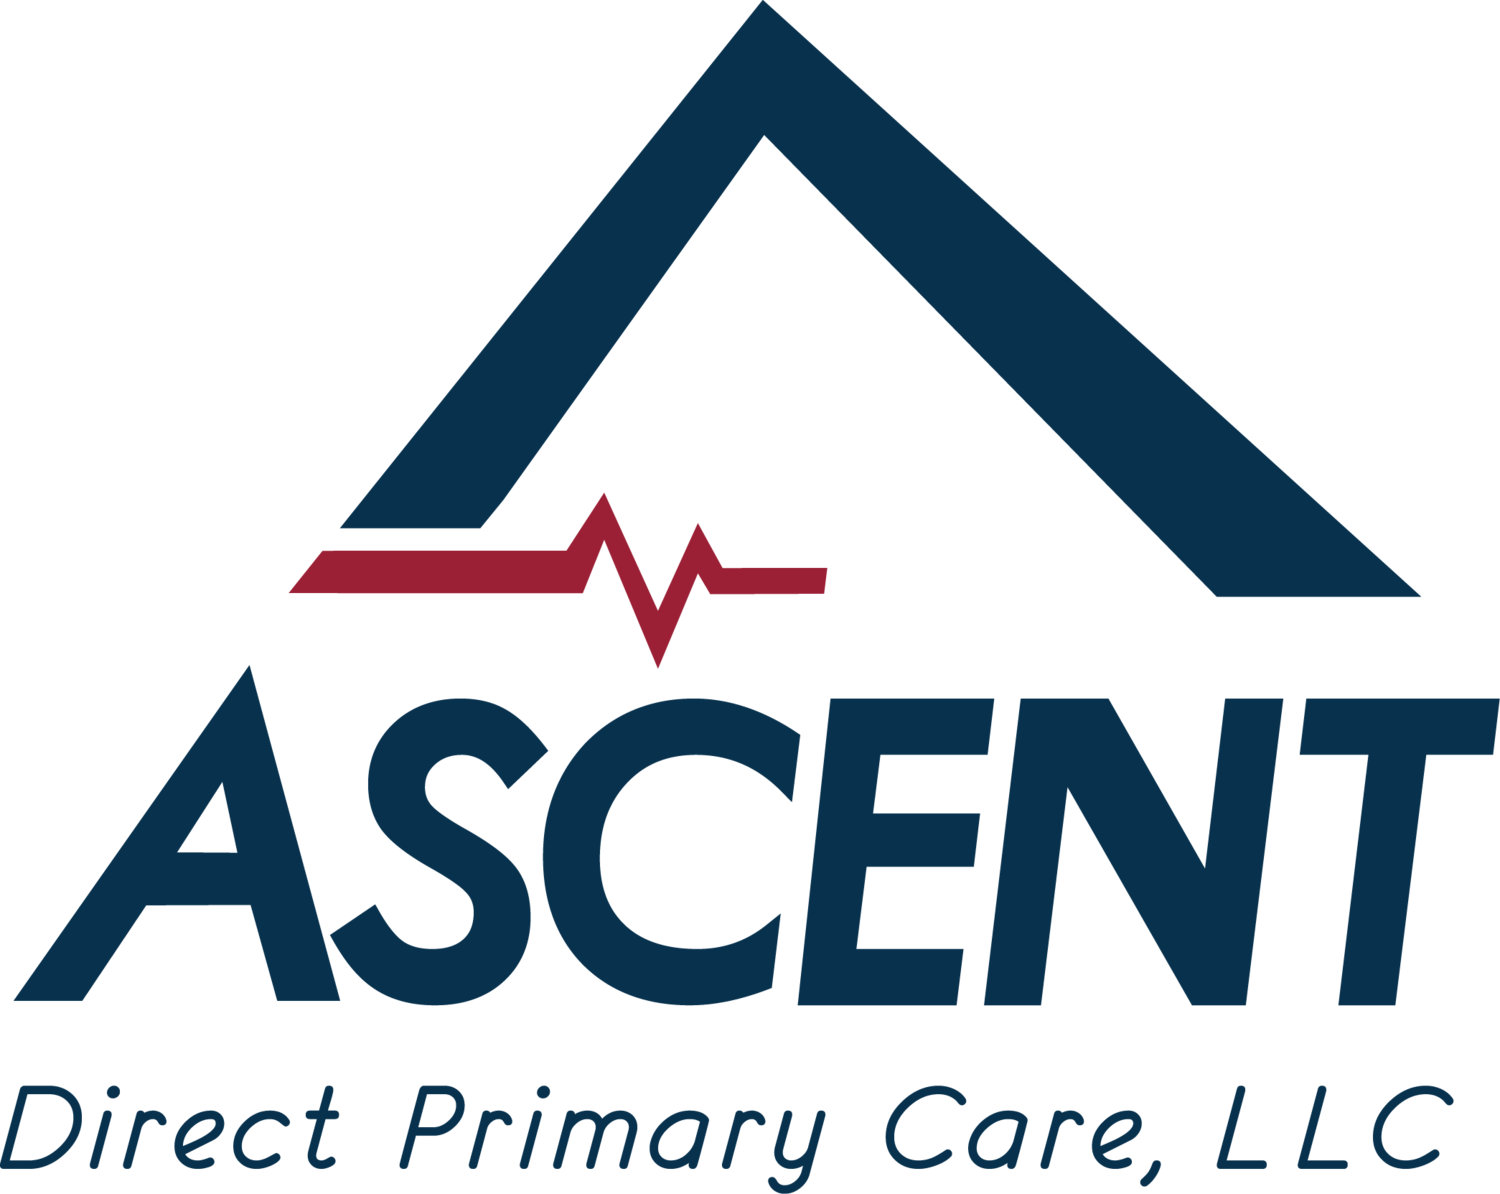 Ascent Direct Primary Care